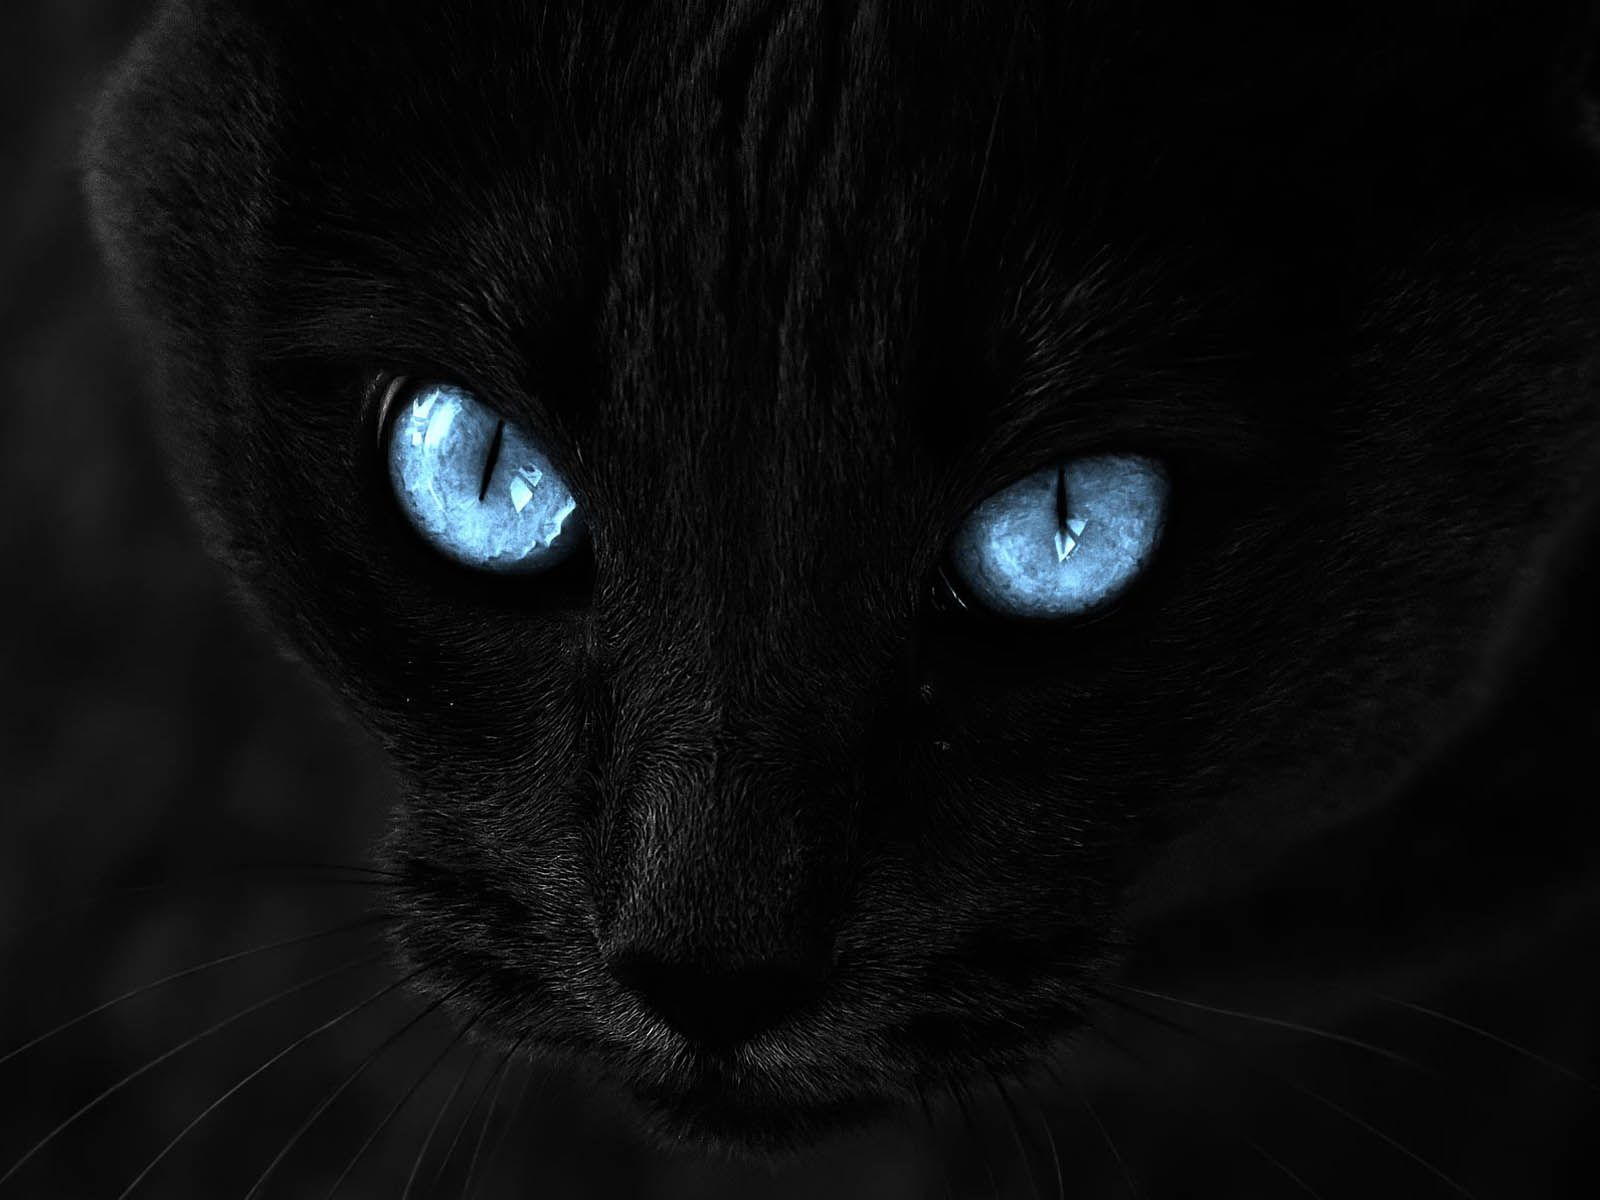 All Credit Goes To Original Owners And Photographers Cat With Blue Eyes Cats Eyes Wallpaper